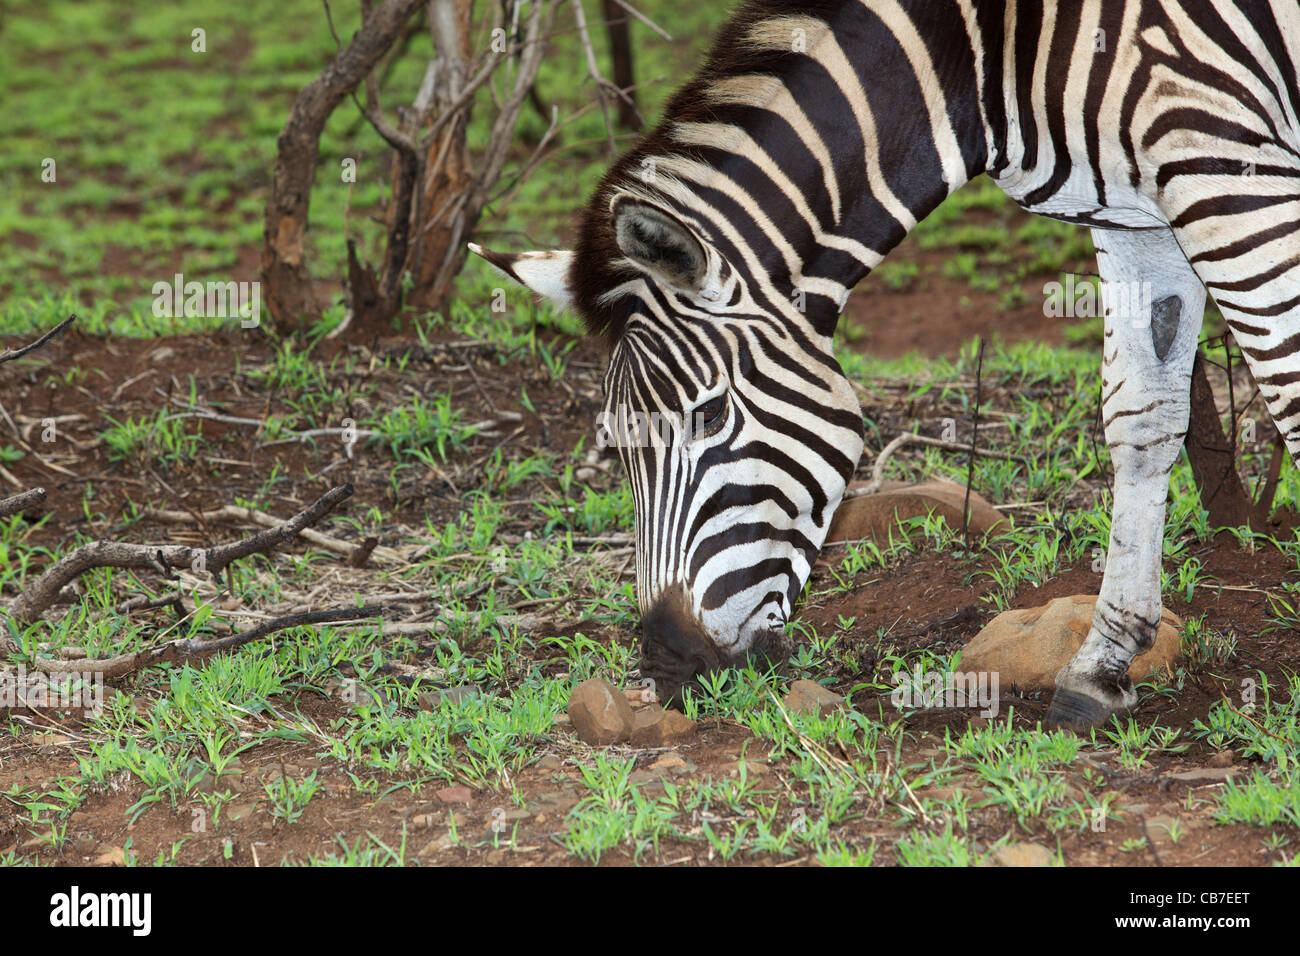 Plains or Burchell's Zebra (Equus burchellii) grazing in the Kruger National Park, South Africa. Stock Photo